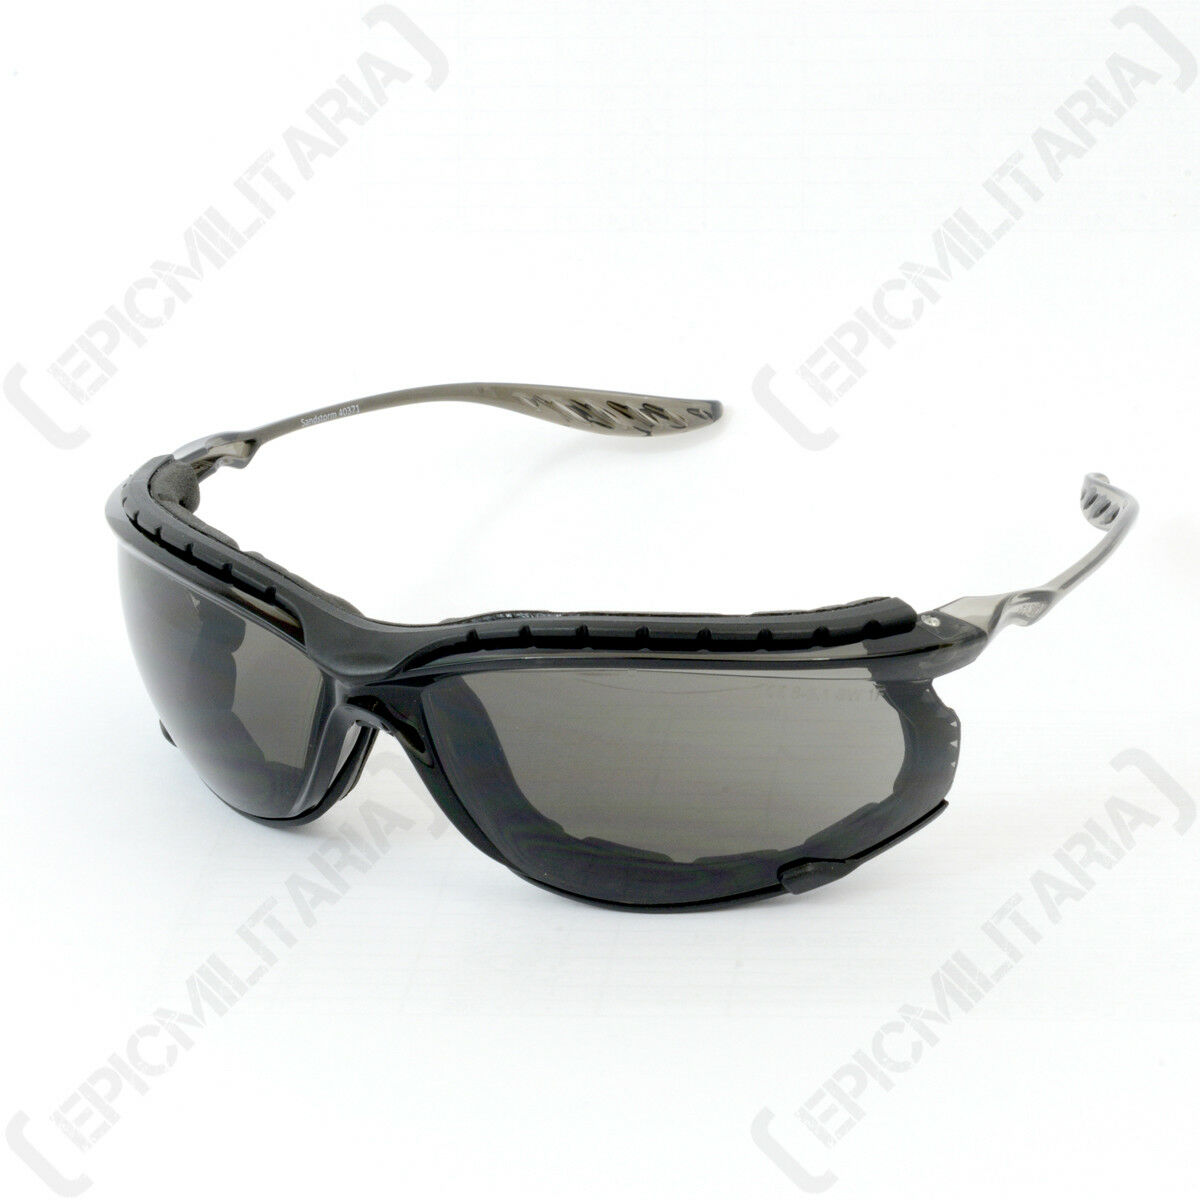 Swiss Eye 'Sandstorm' Gafas - black - de seguridad PAINTBALL AIRSOFT Armada